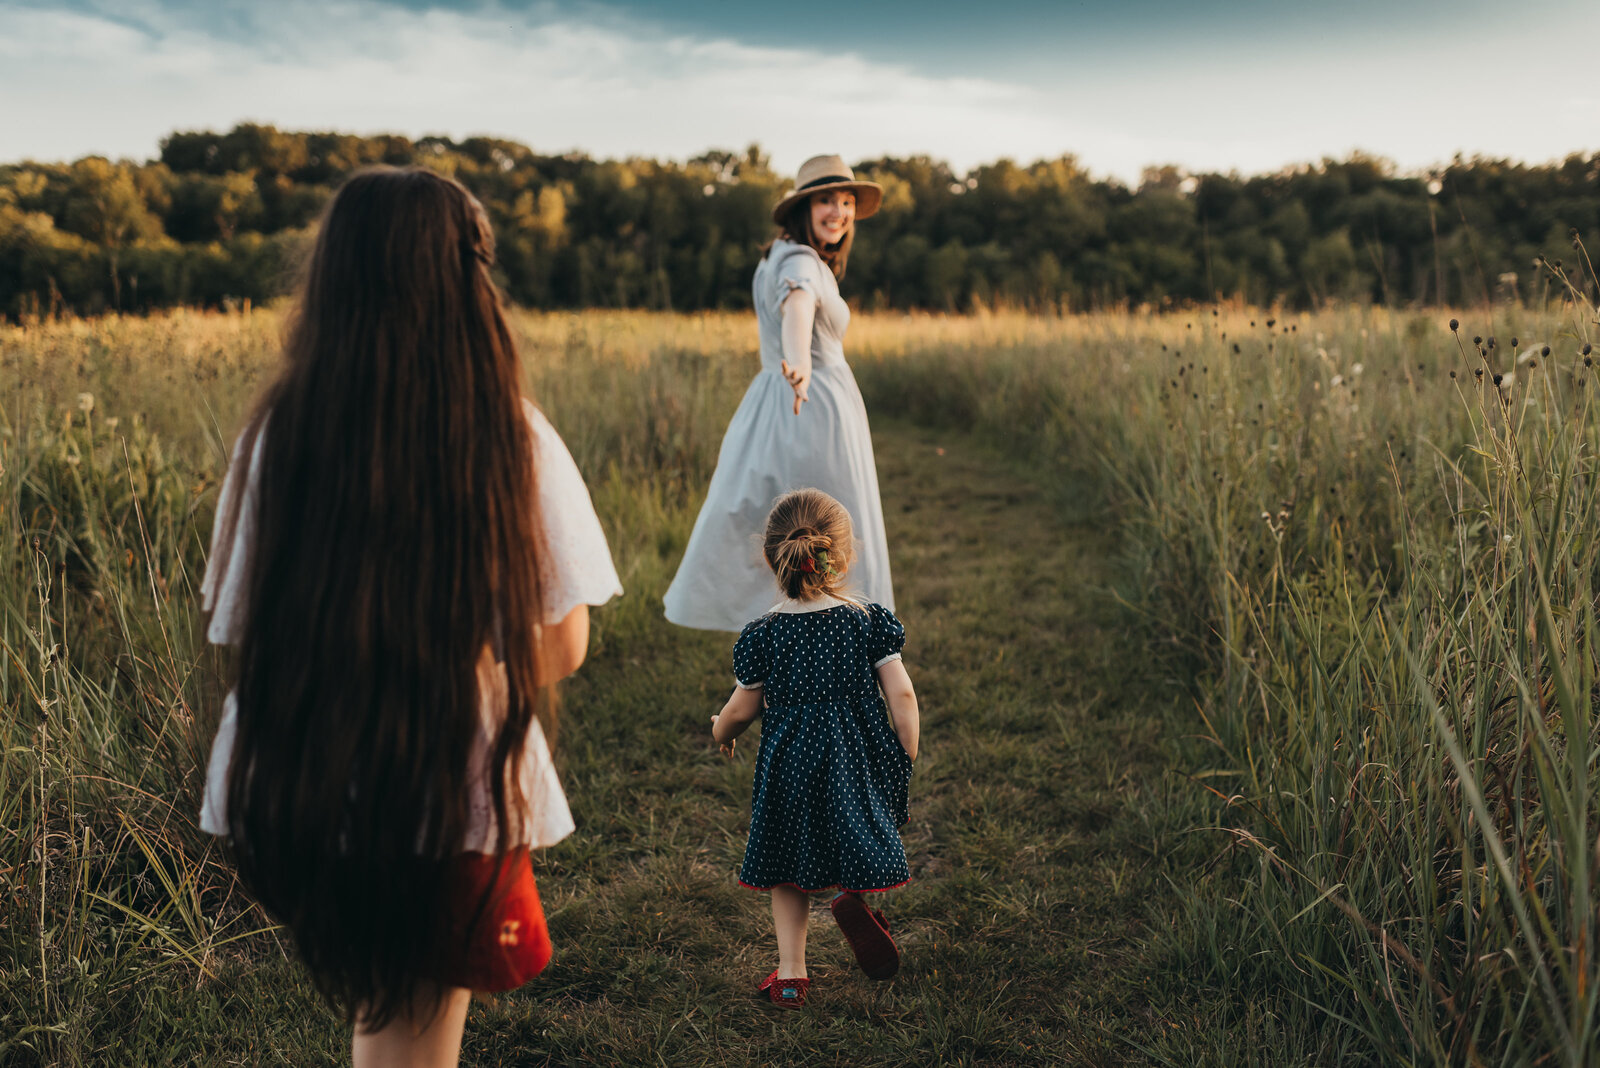 mom reaching for daughter's hand in field